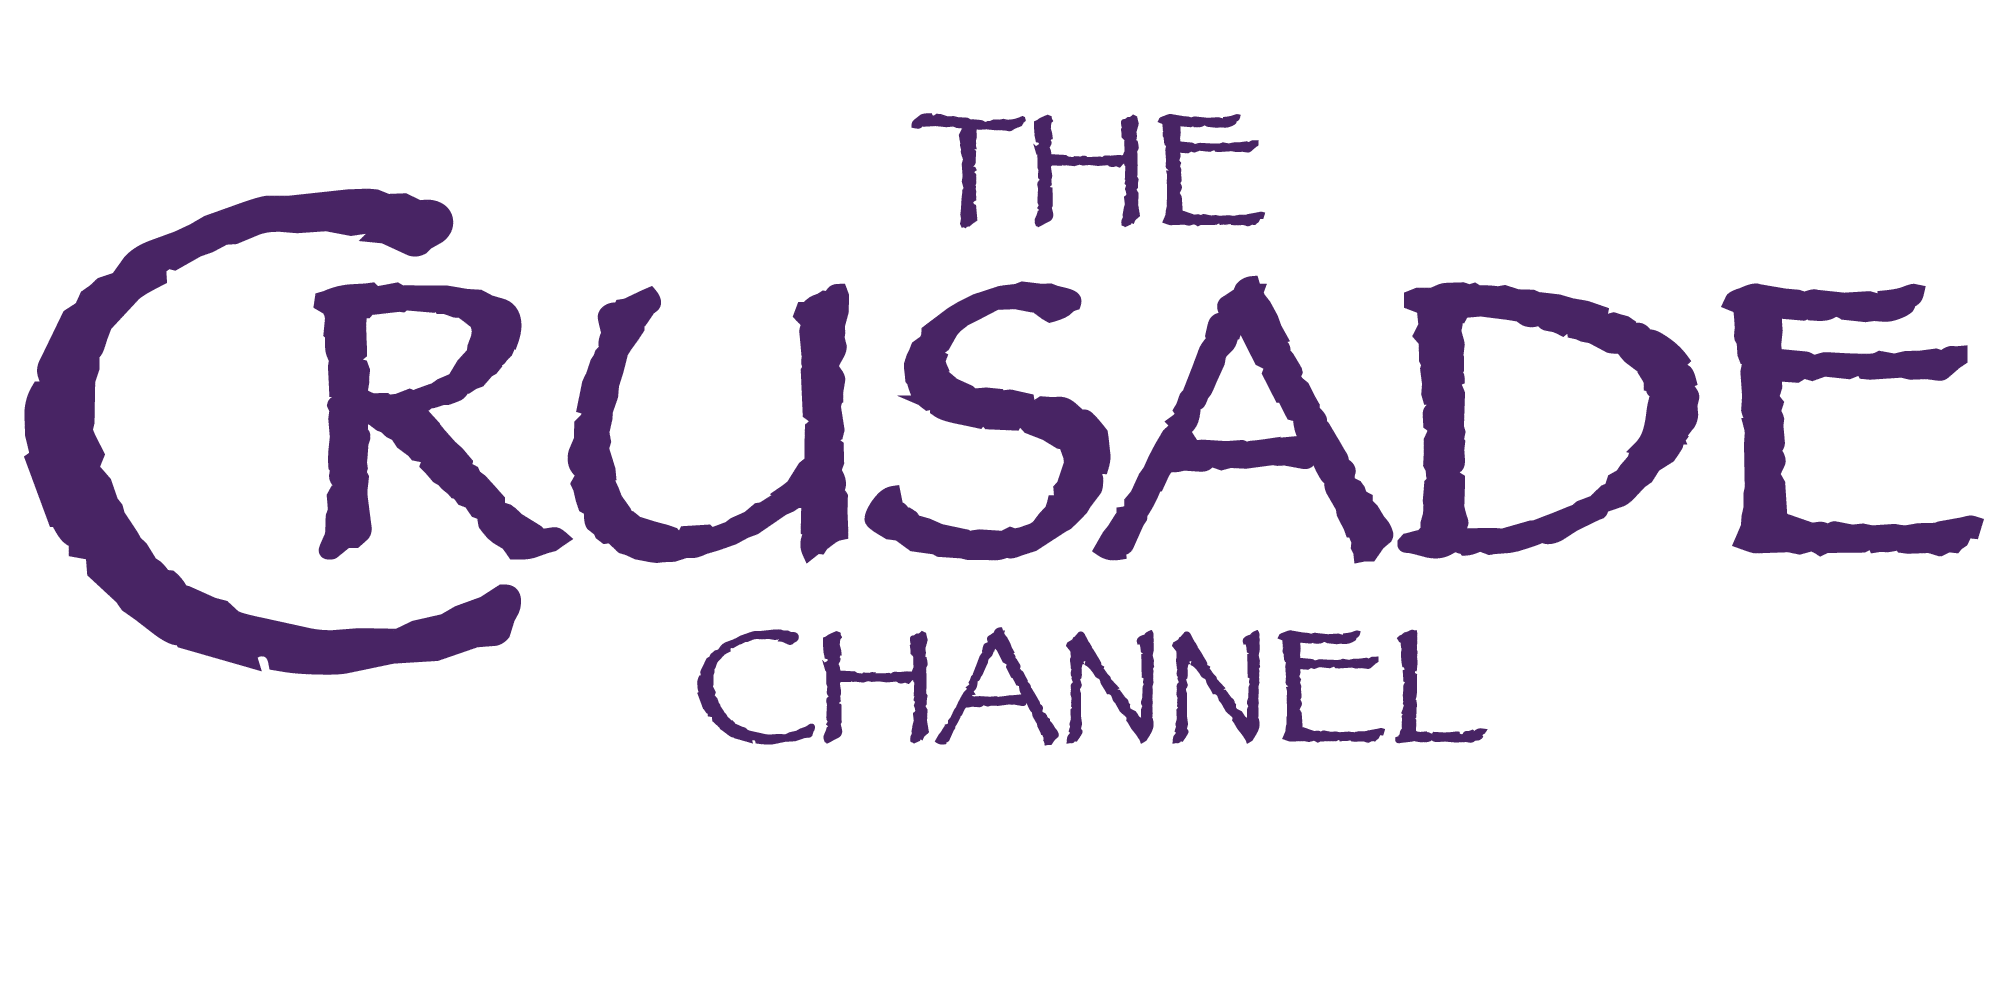 CRUSADE Channel News 26/02/2019